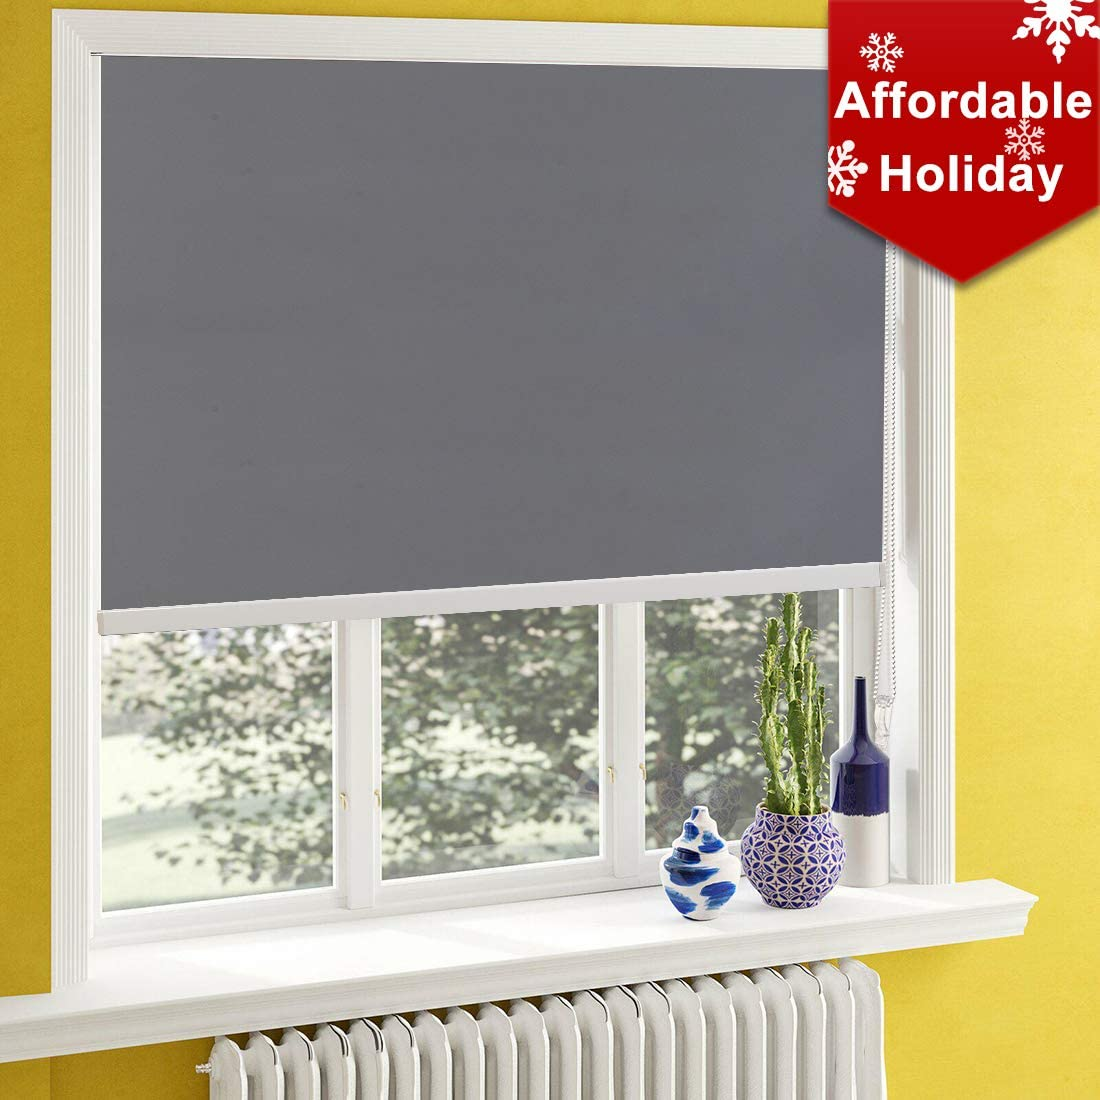 Keego Window Shades Black Out for Bedroom Room Darkening Roller Shades with Back in White Waterproof and Oil Resistant for Privacy Nursery and Kitchens Customer